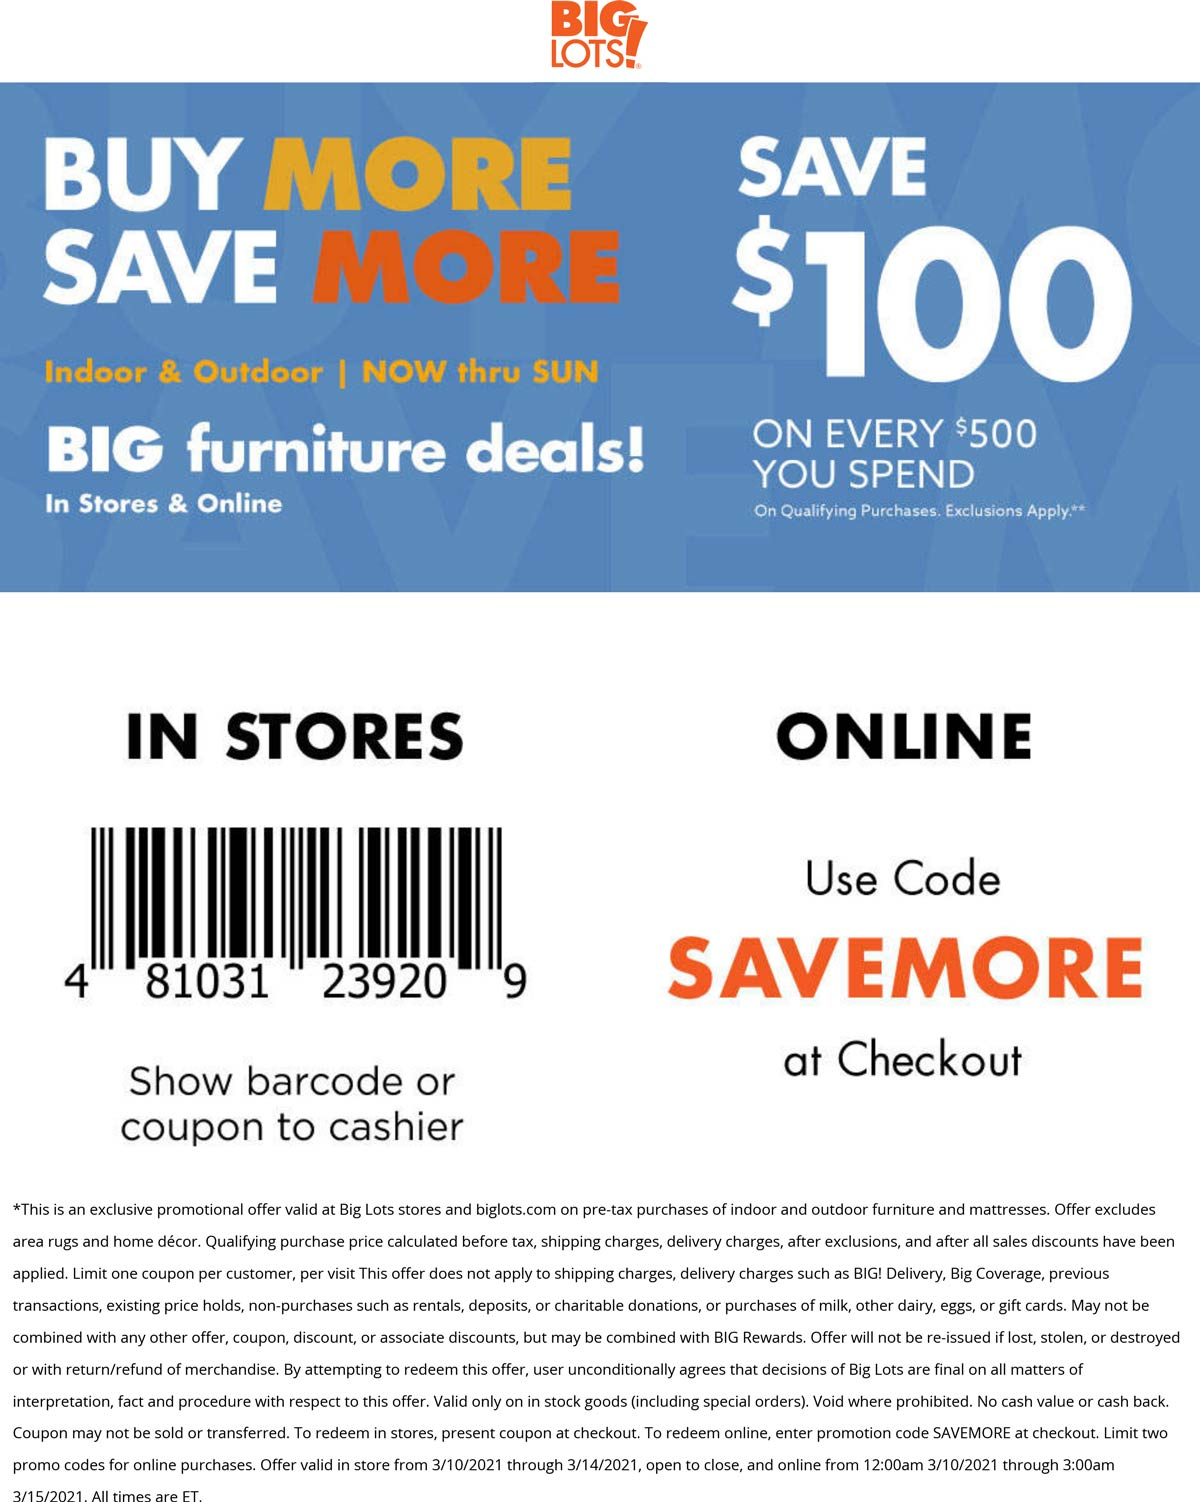 Big Lots stores Coupon  $100 off every $500 on furniture at Big Lots, or online via promo code SAVEMORE #biglots